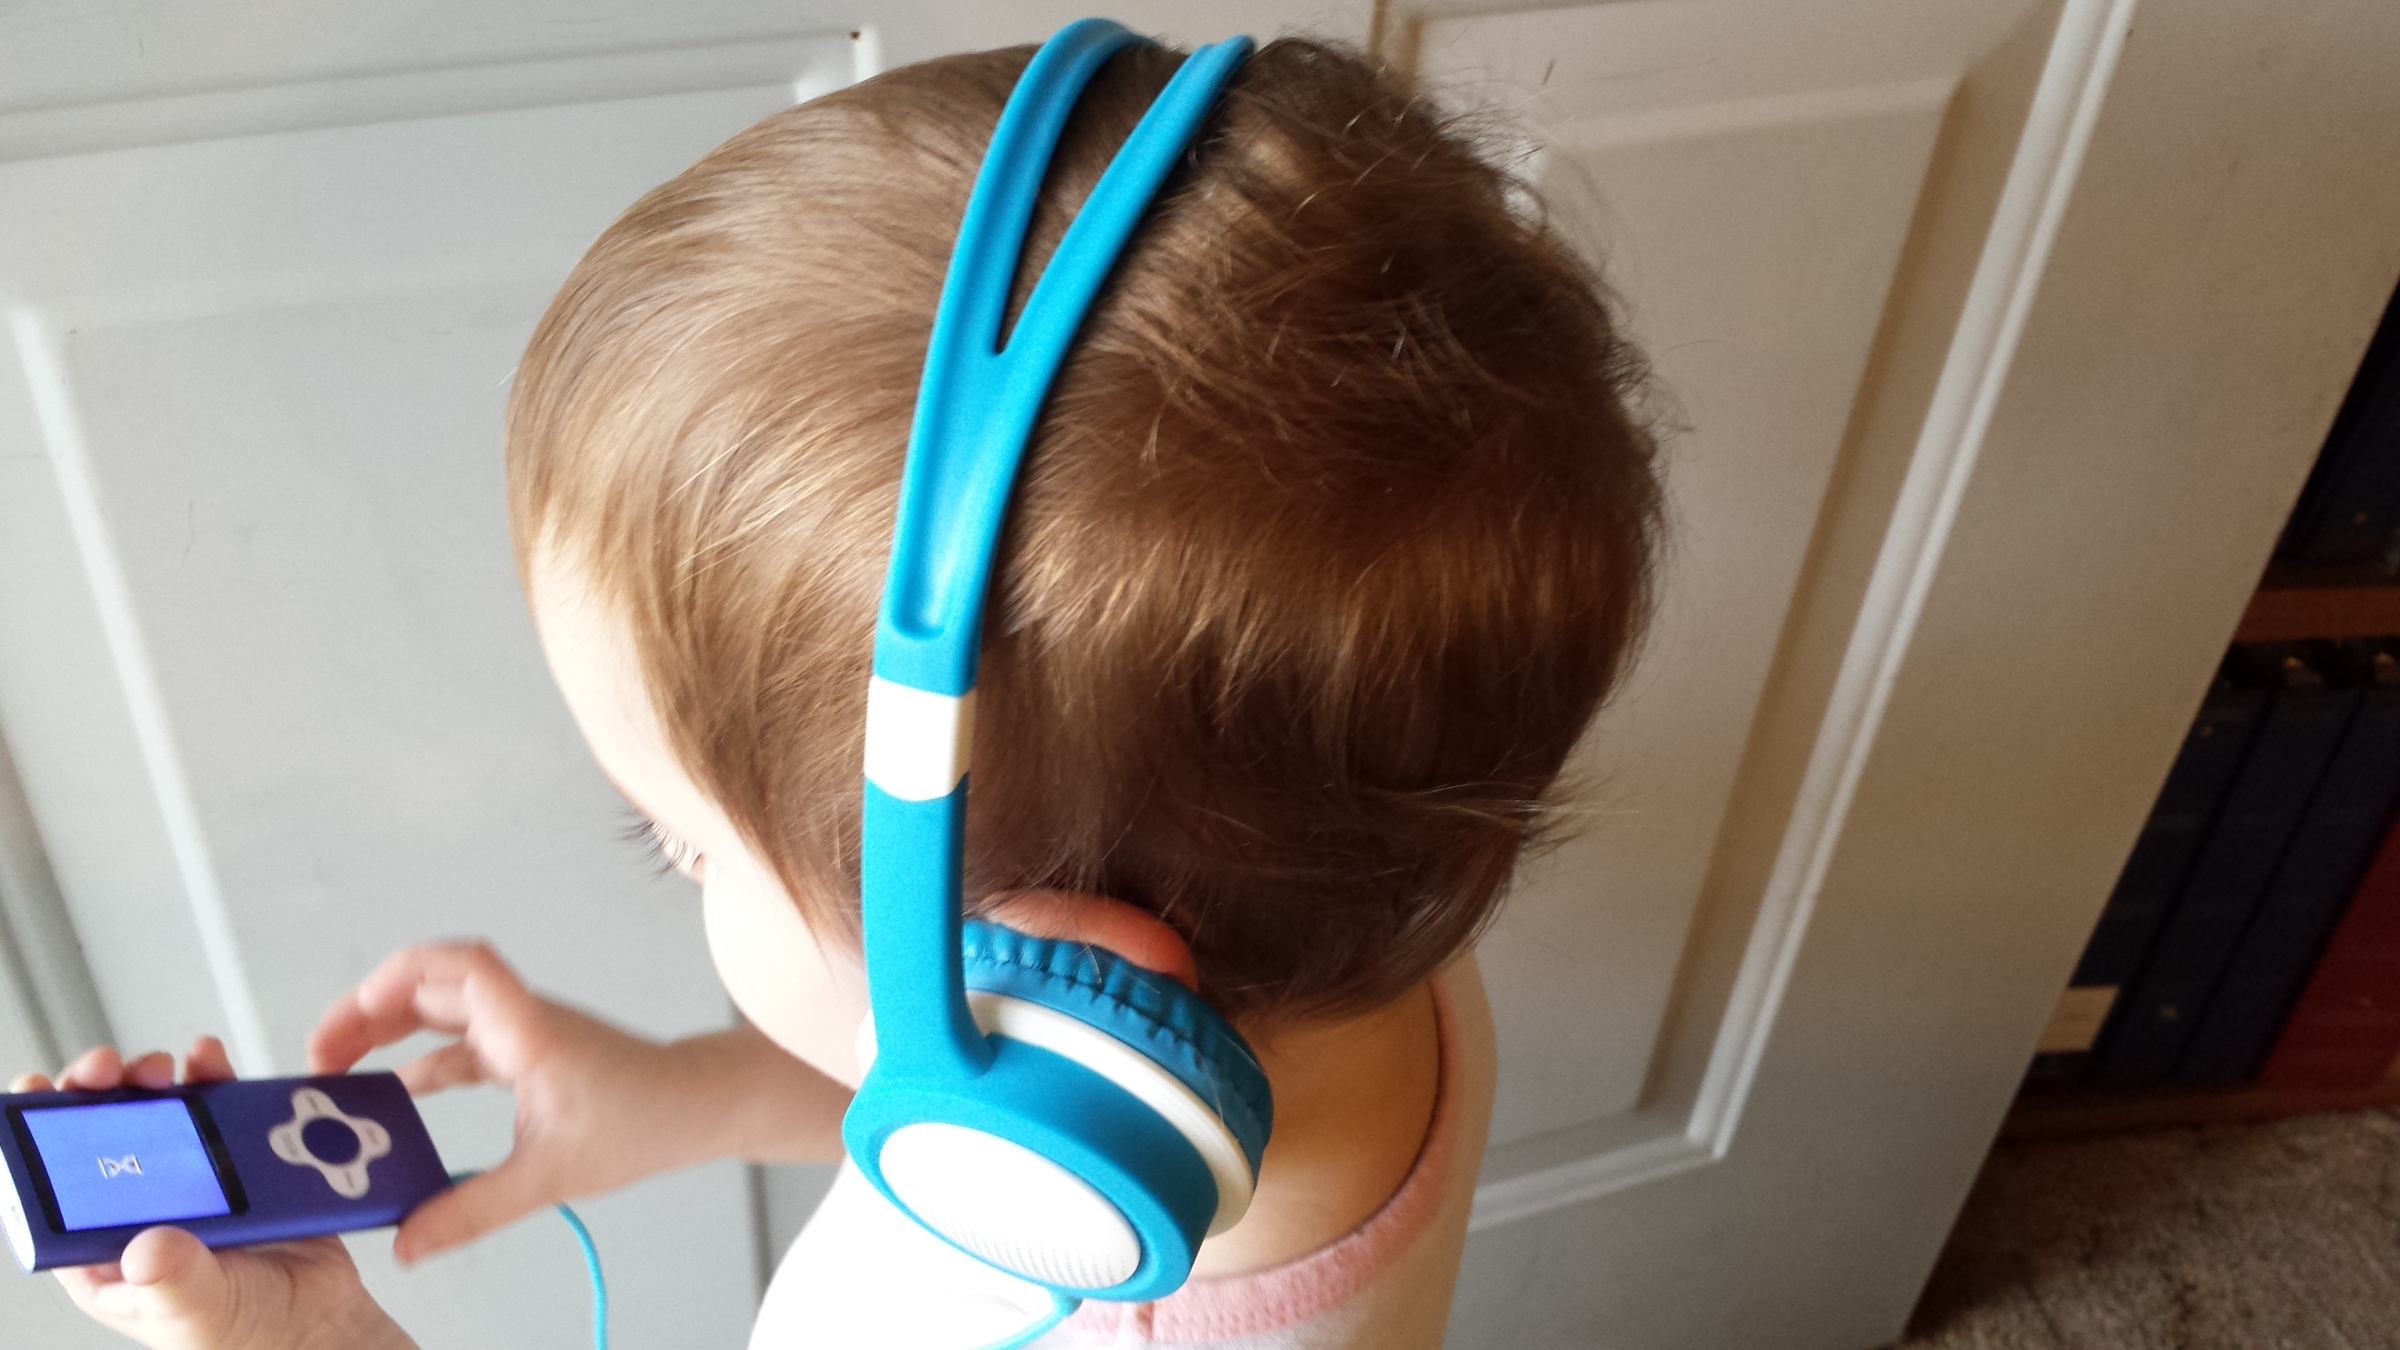 Finally a headset that fits small children!